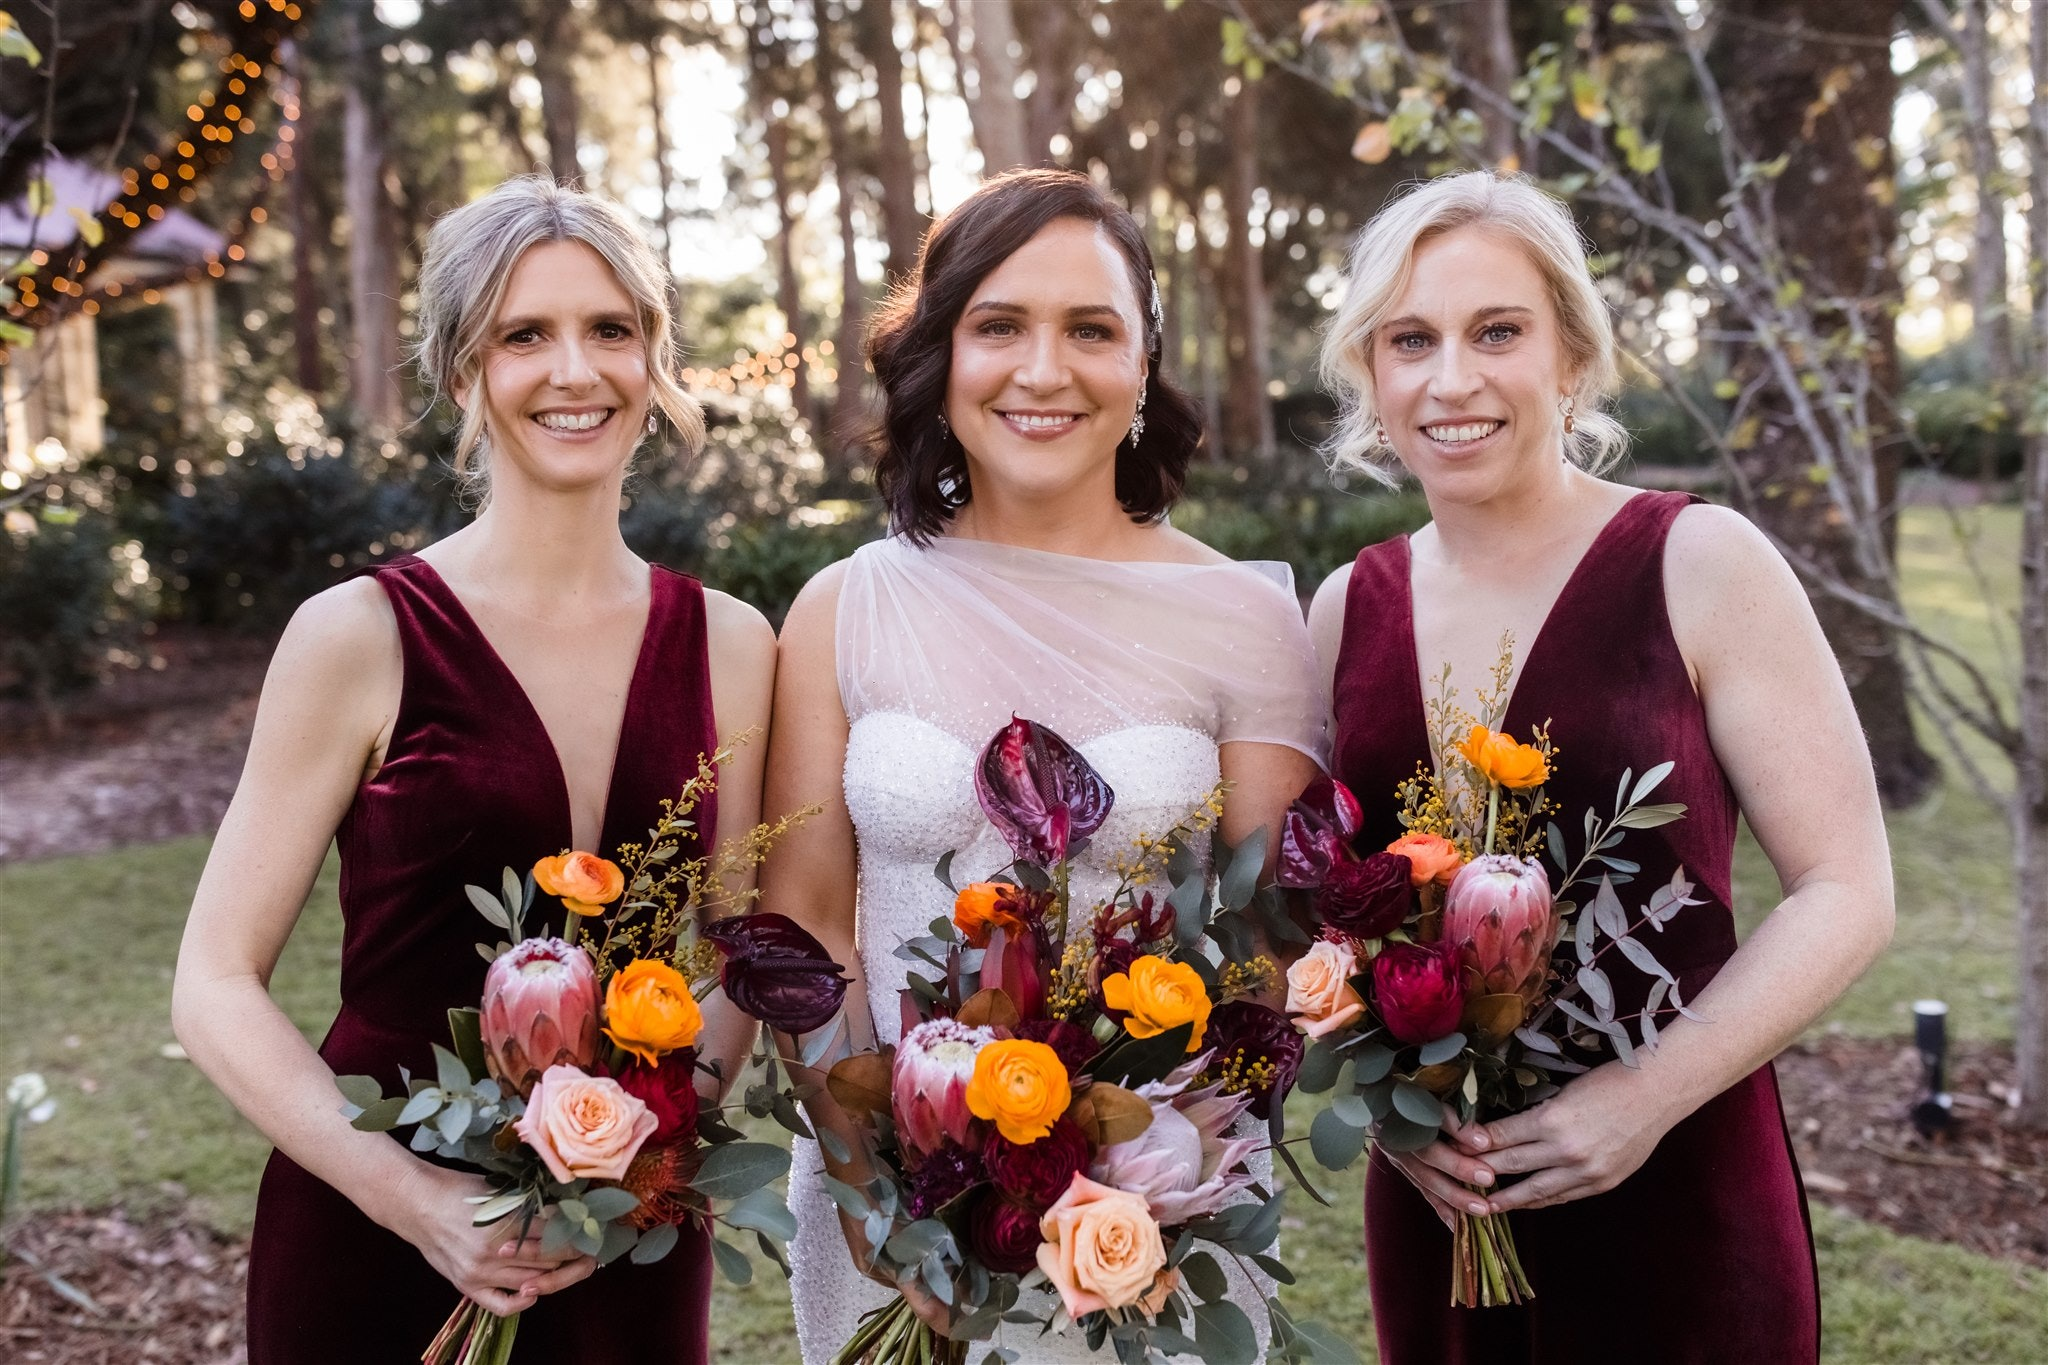 Bride standing in gardens with bridesmaids either side, holding bouquets